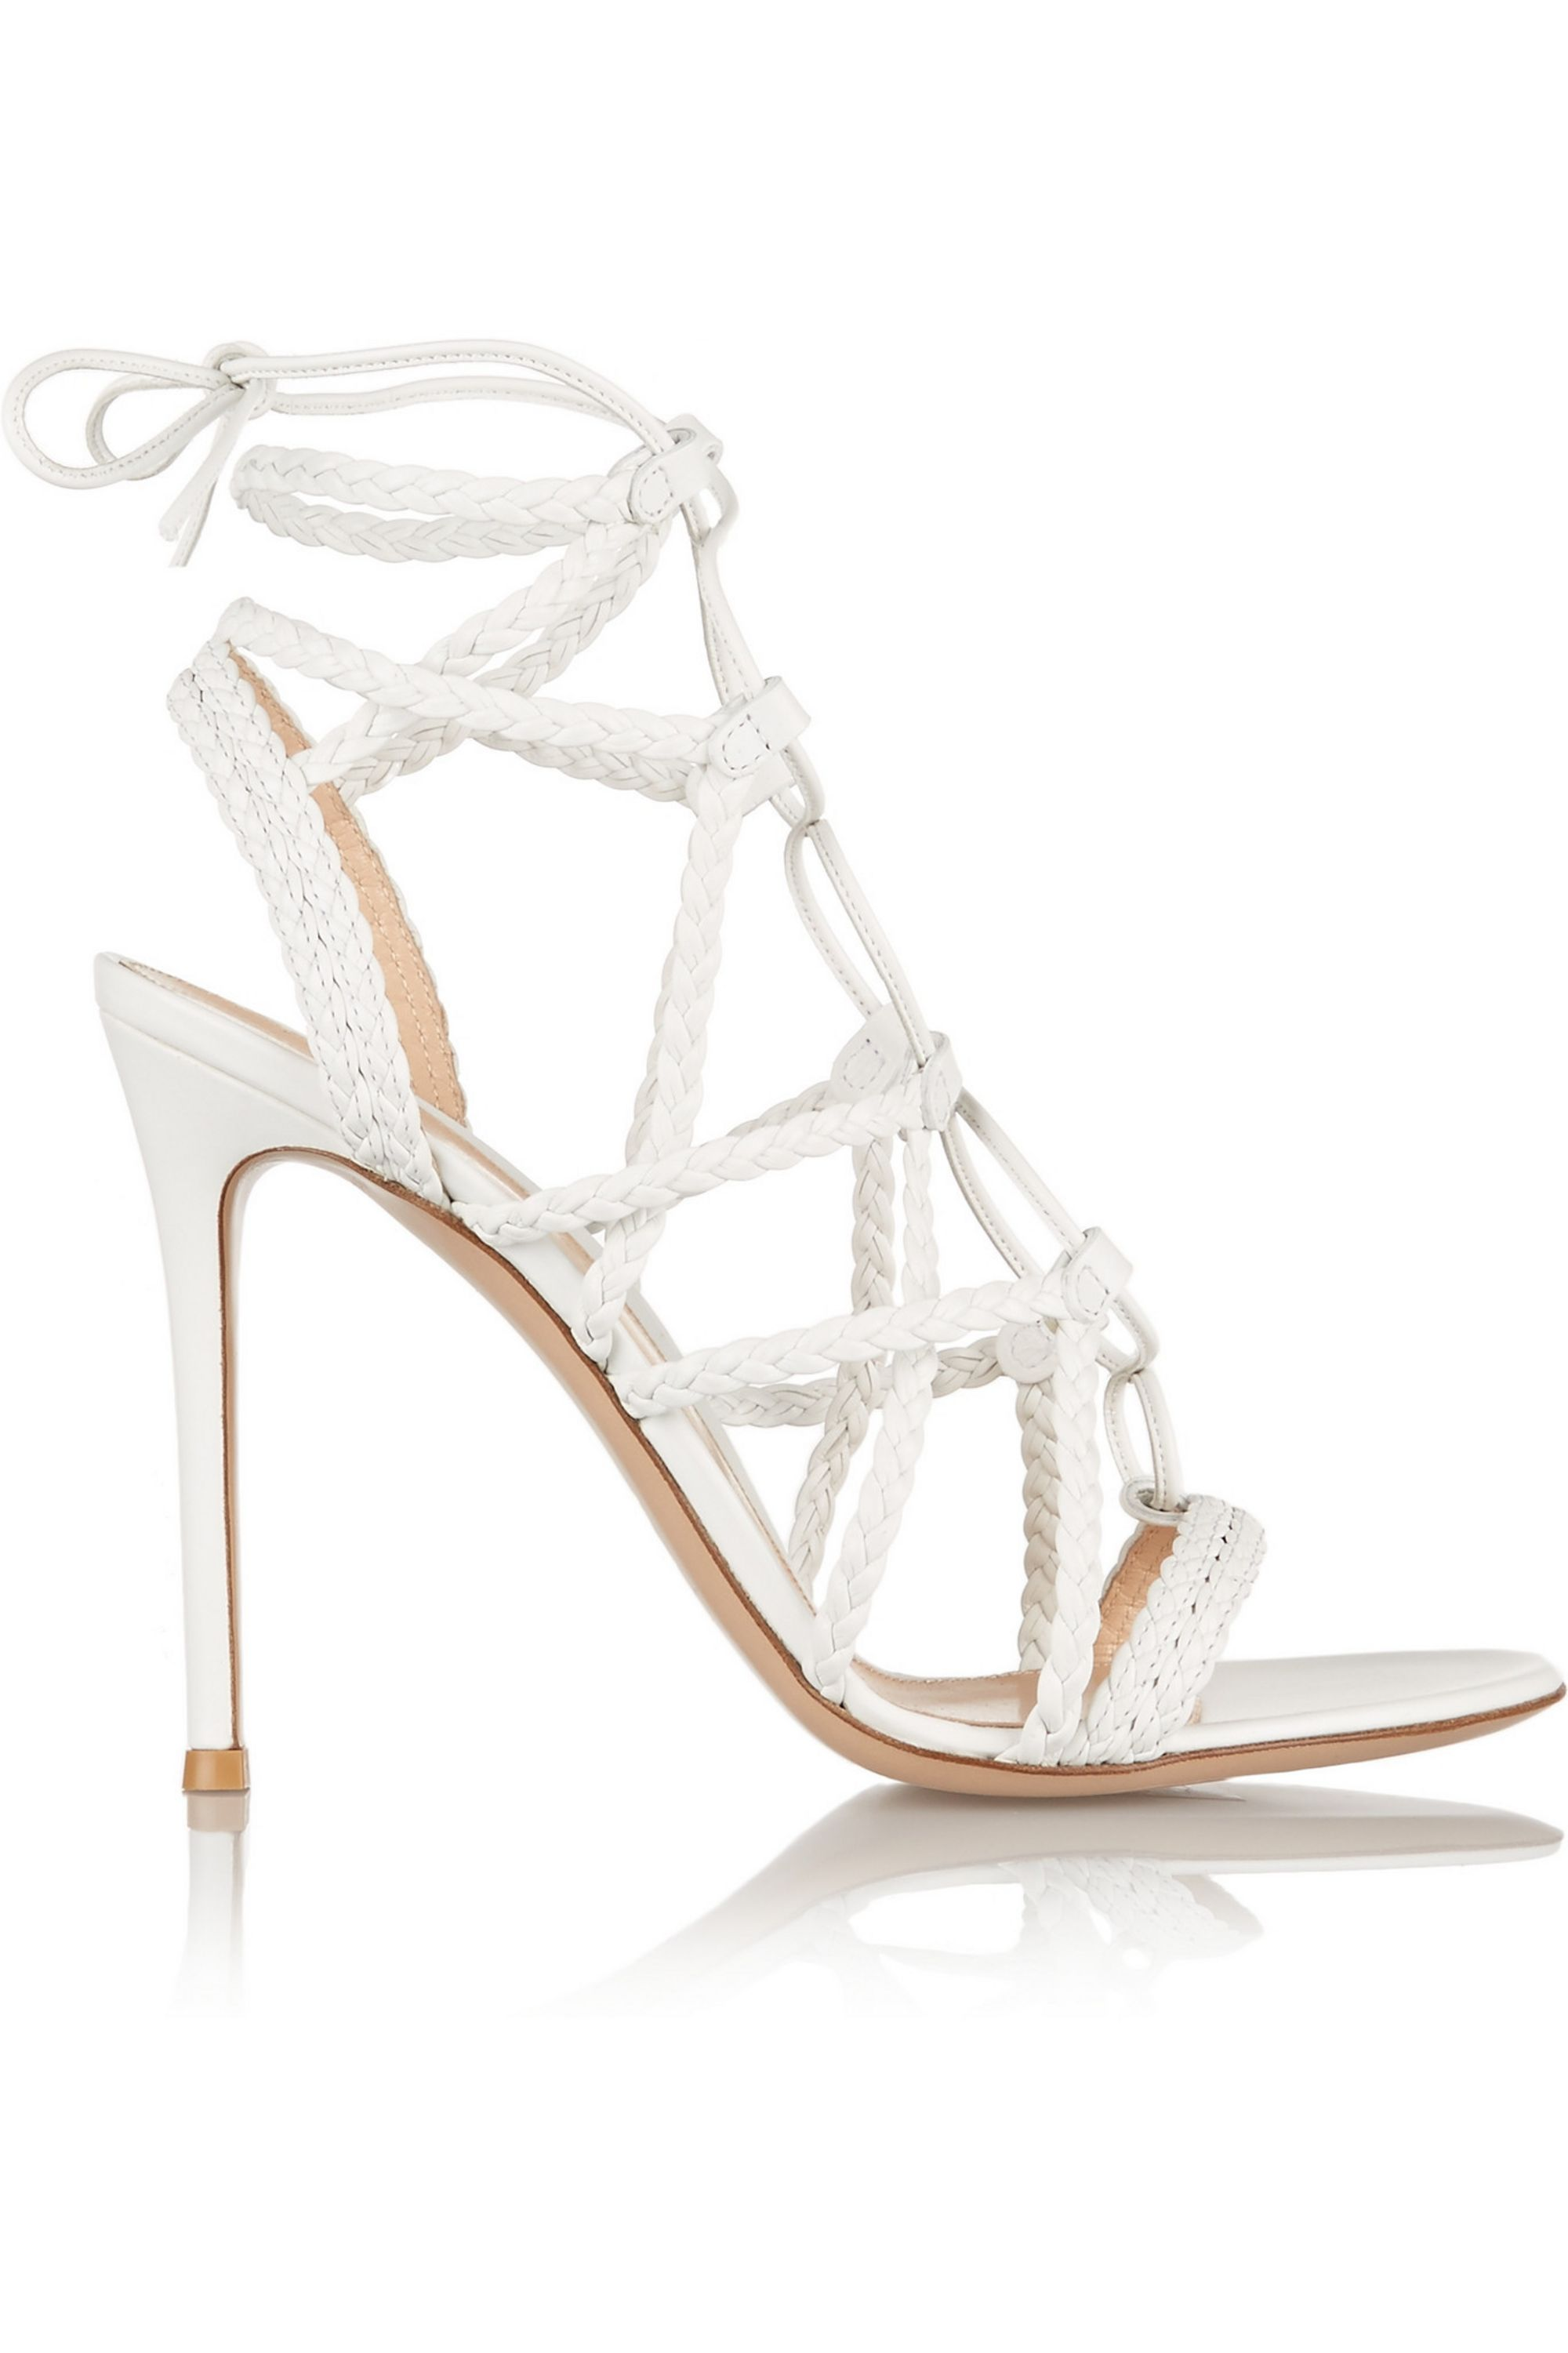 Gianvito Rossi Braided leather sandals